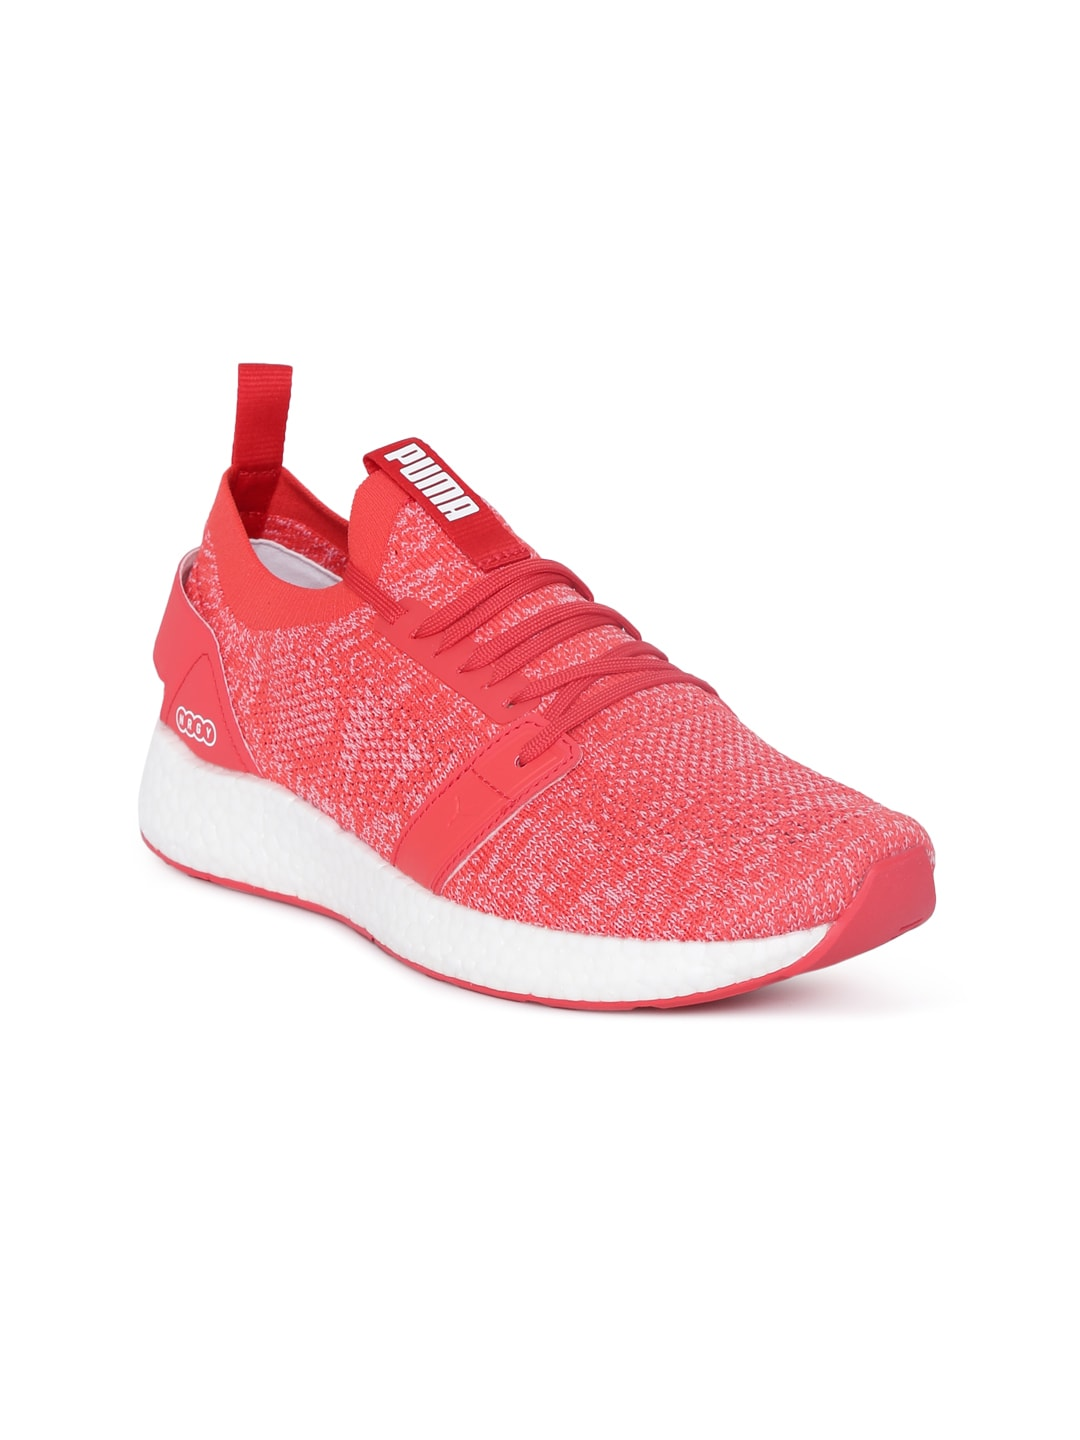 f1c0b259cbfc Sports Shoes for Women - Buy Women Sports Shoes Online